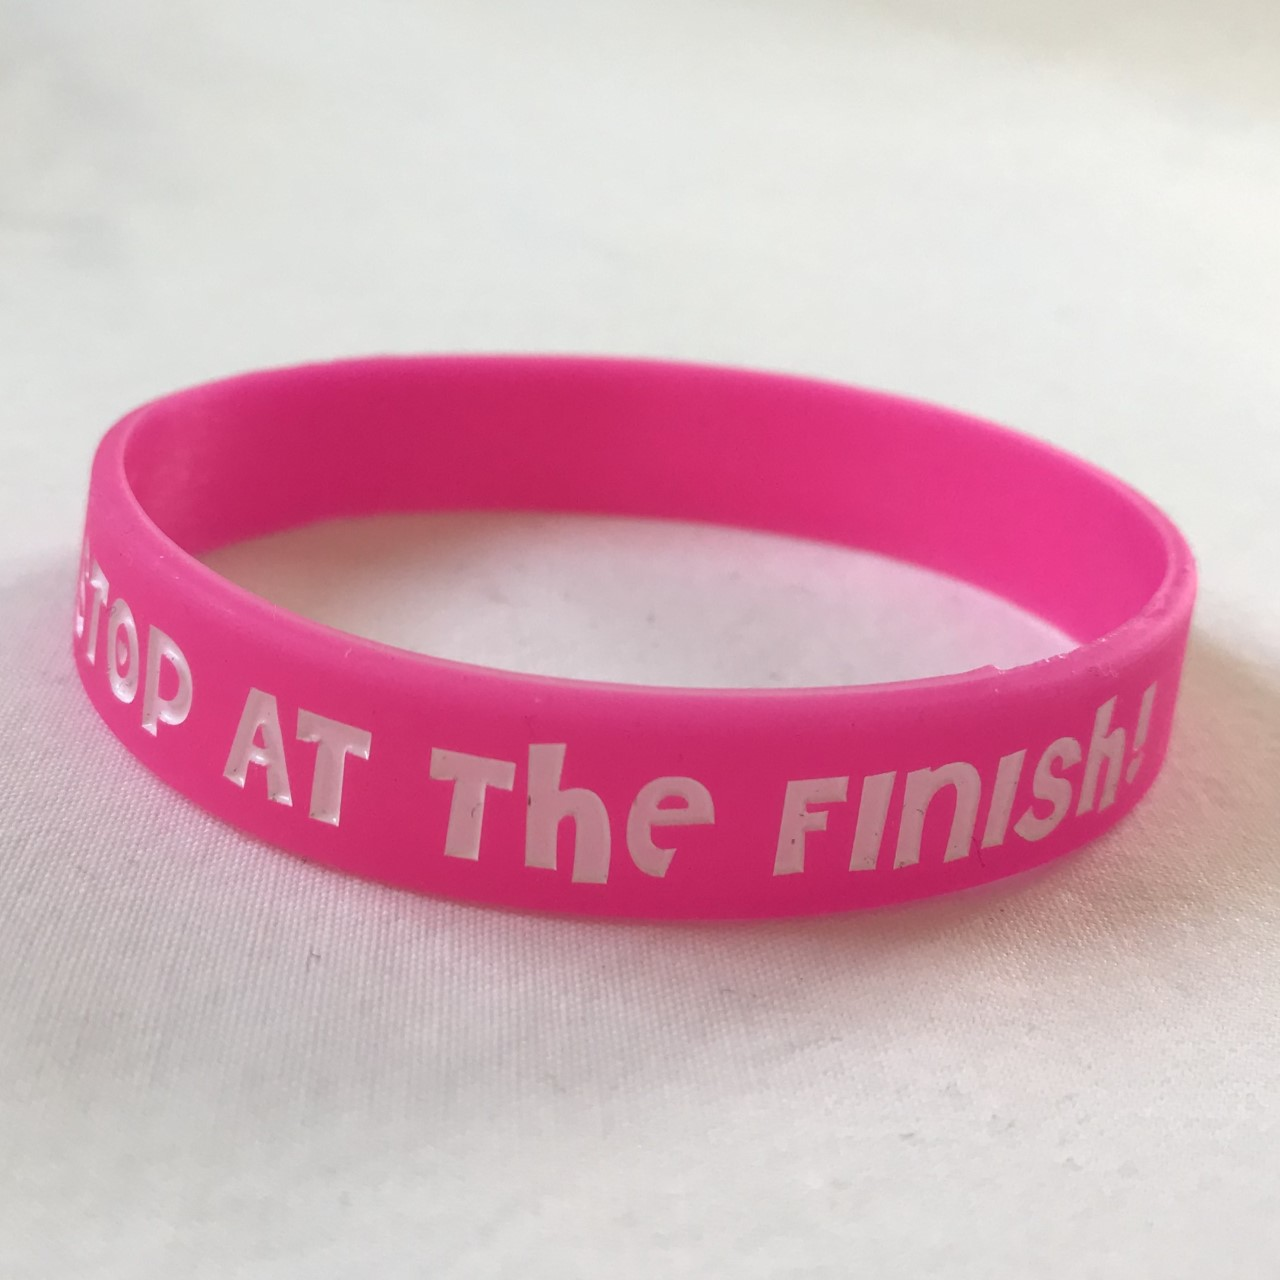 Motivational Running Wristband – Stop At the Finish!